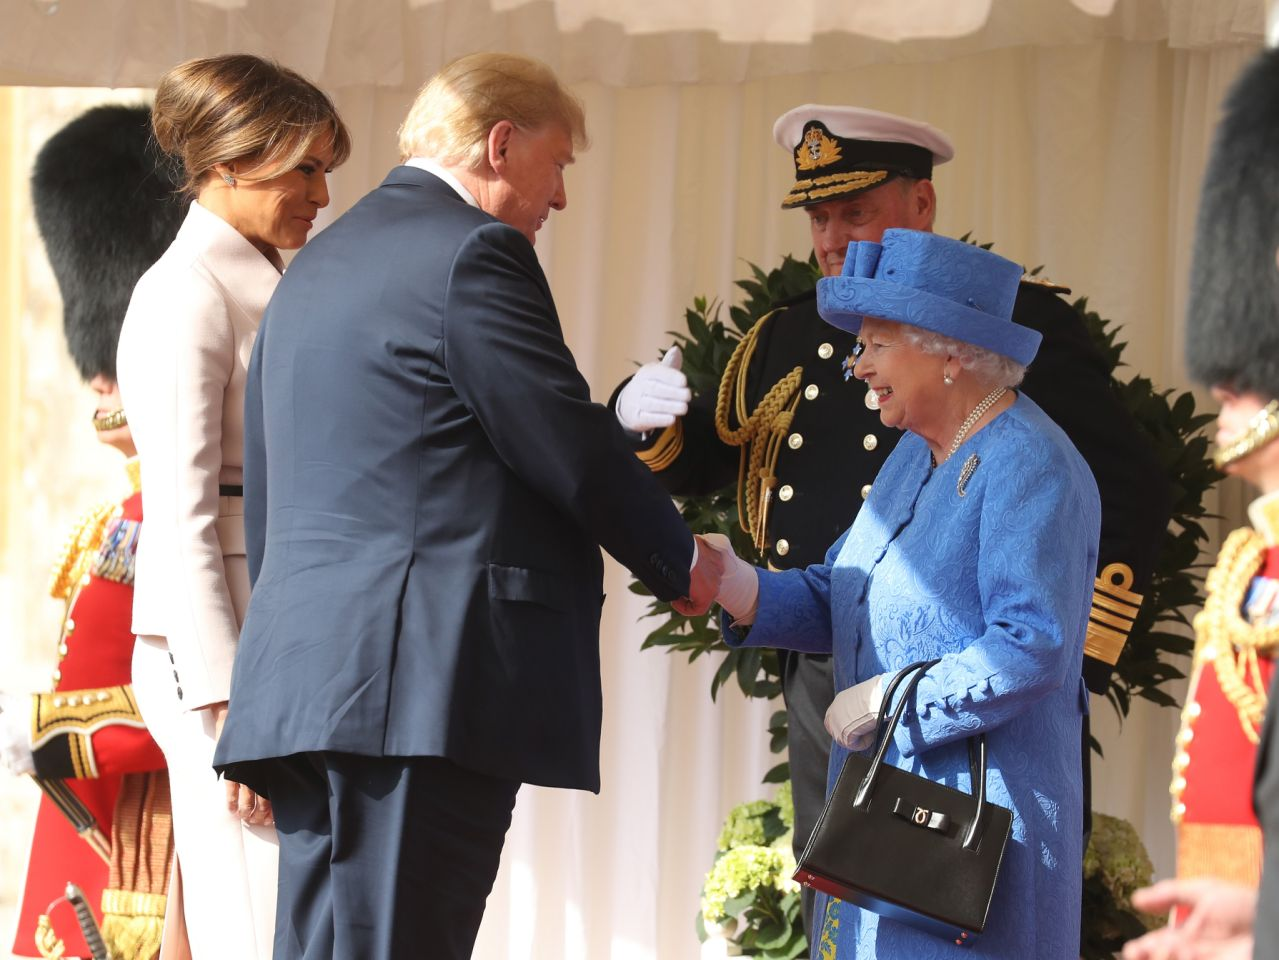 Donald and Melania Trump met Queen Elizabeth for the first time. (Photo Getty Images)